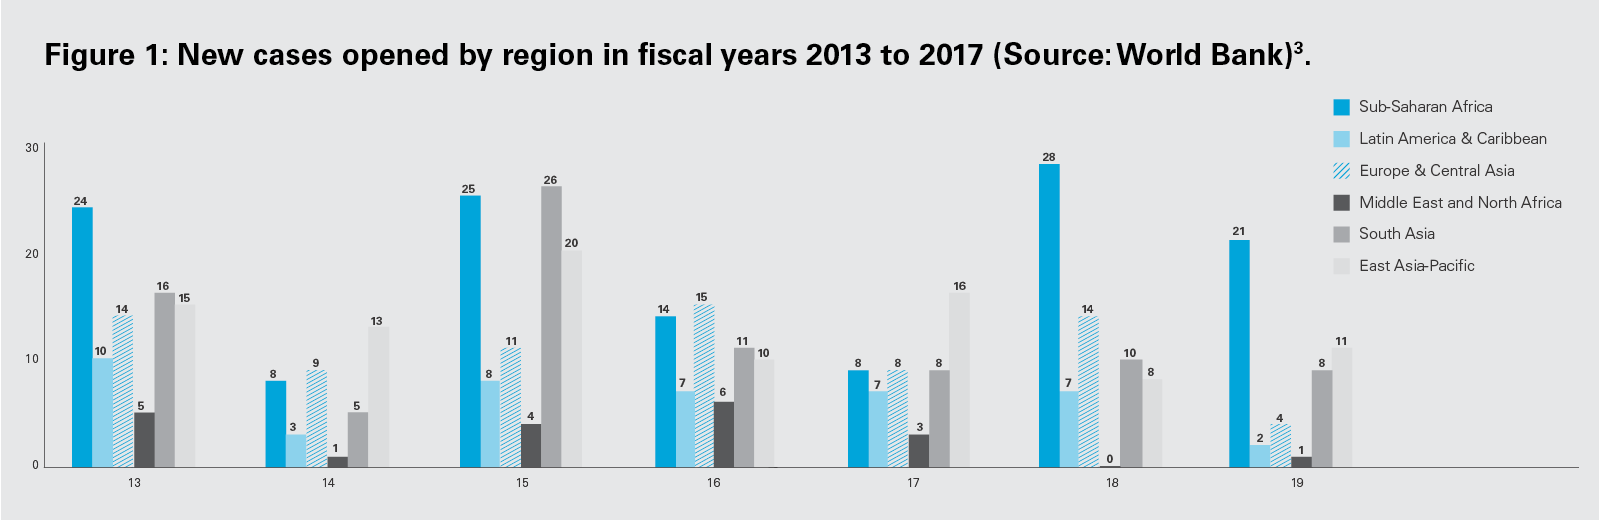 Figure 1: New cases opened by region in fiscal years 2013 to 2017 (PNG)